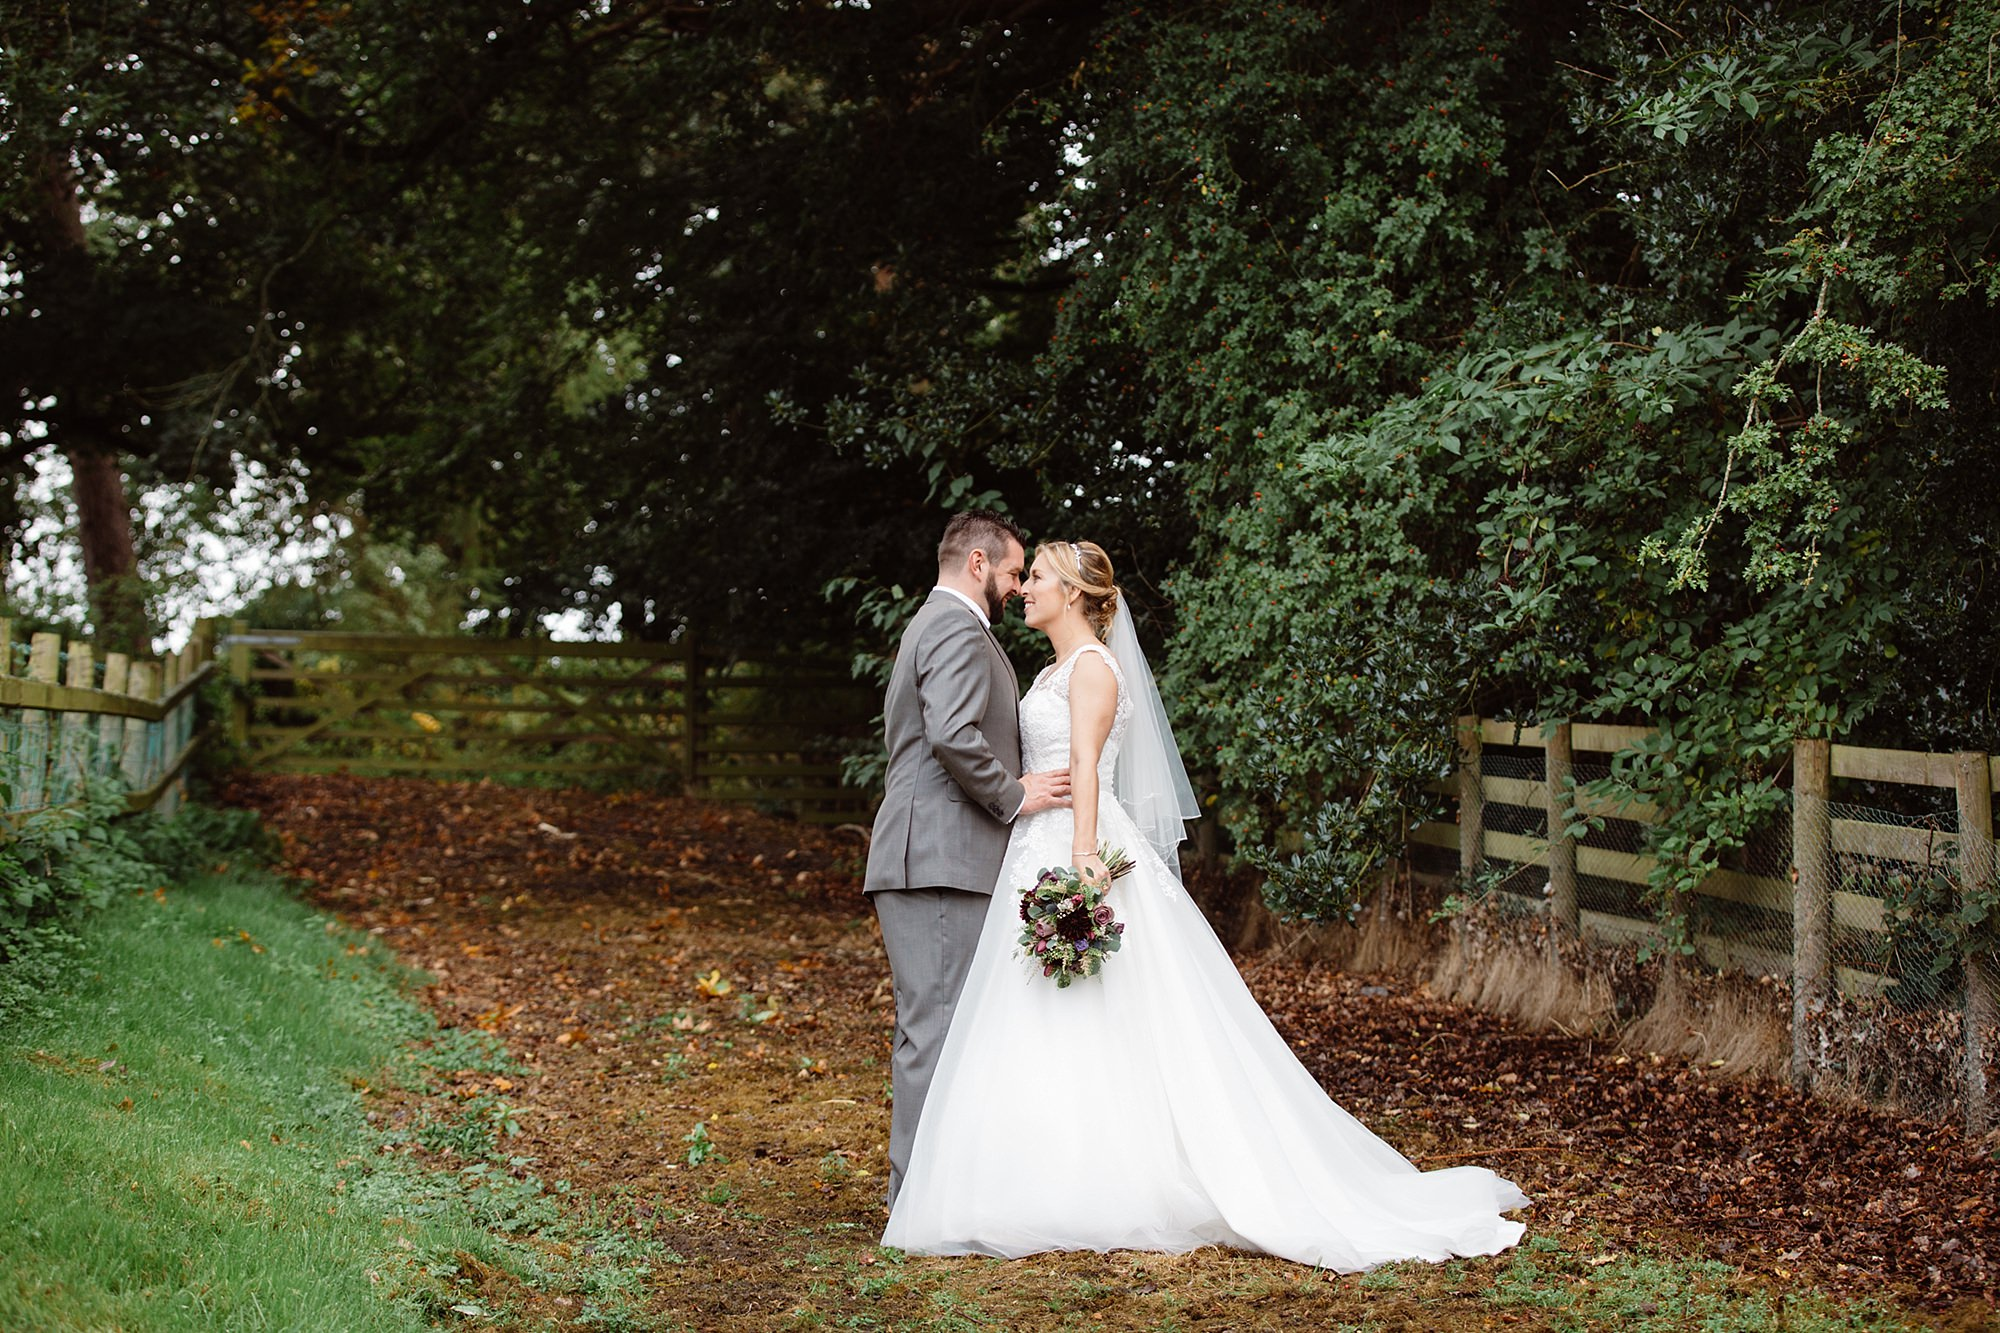 A fun wedding at Plas Isaf couple portrait